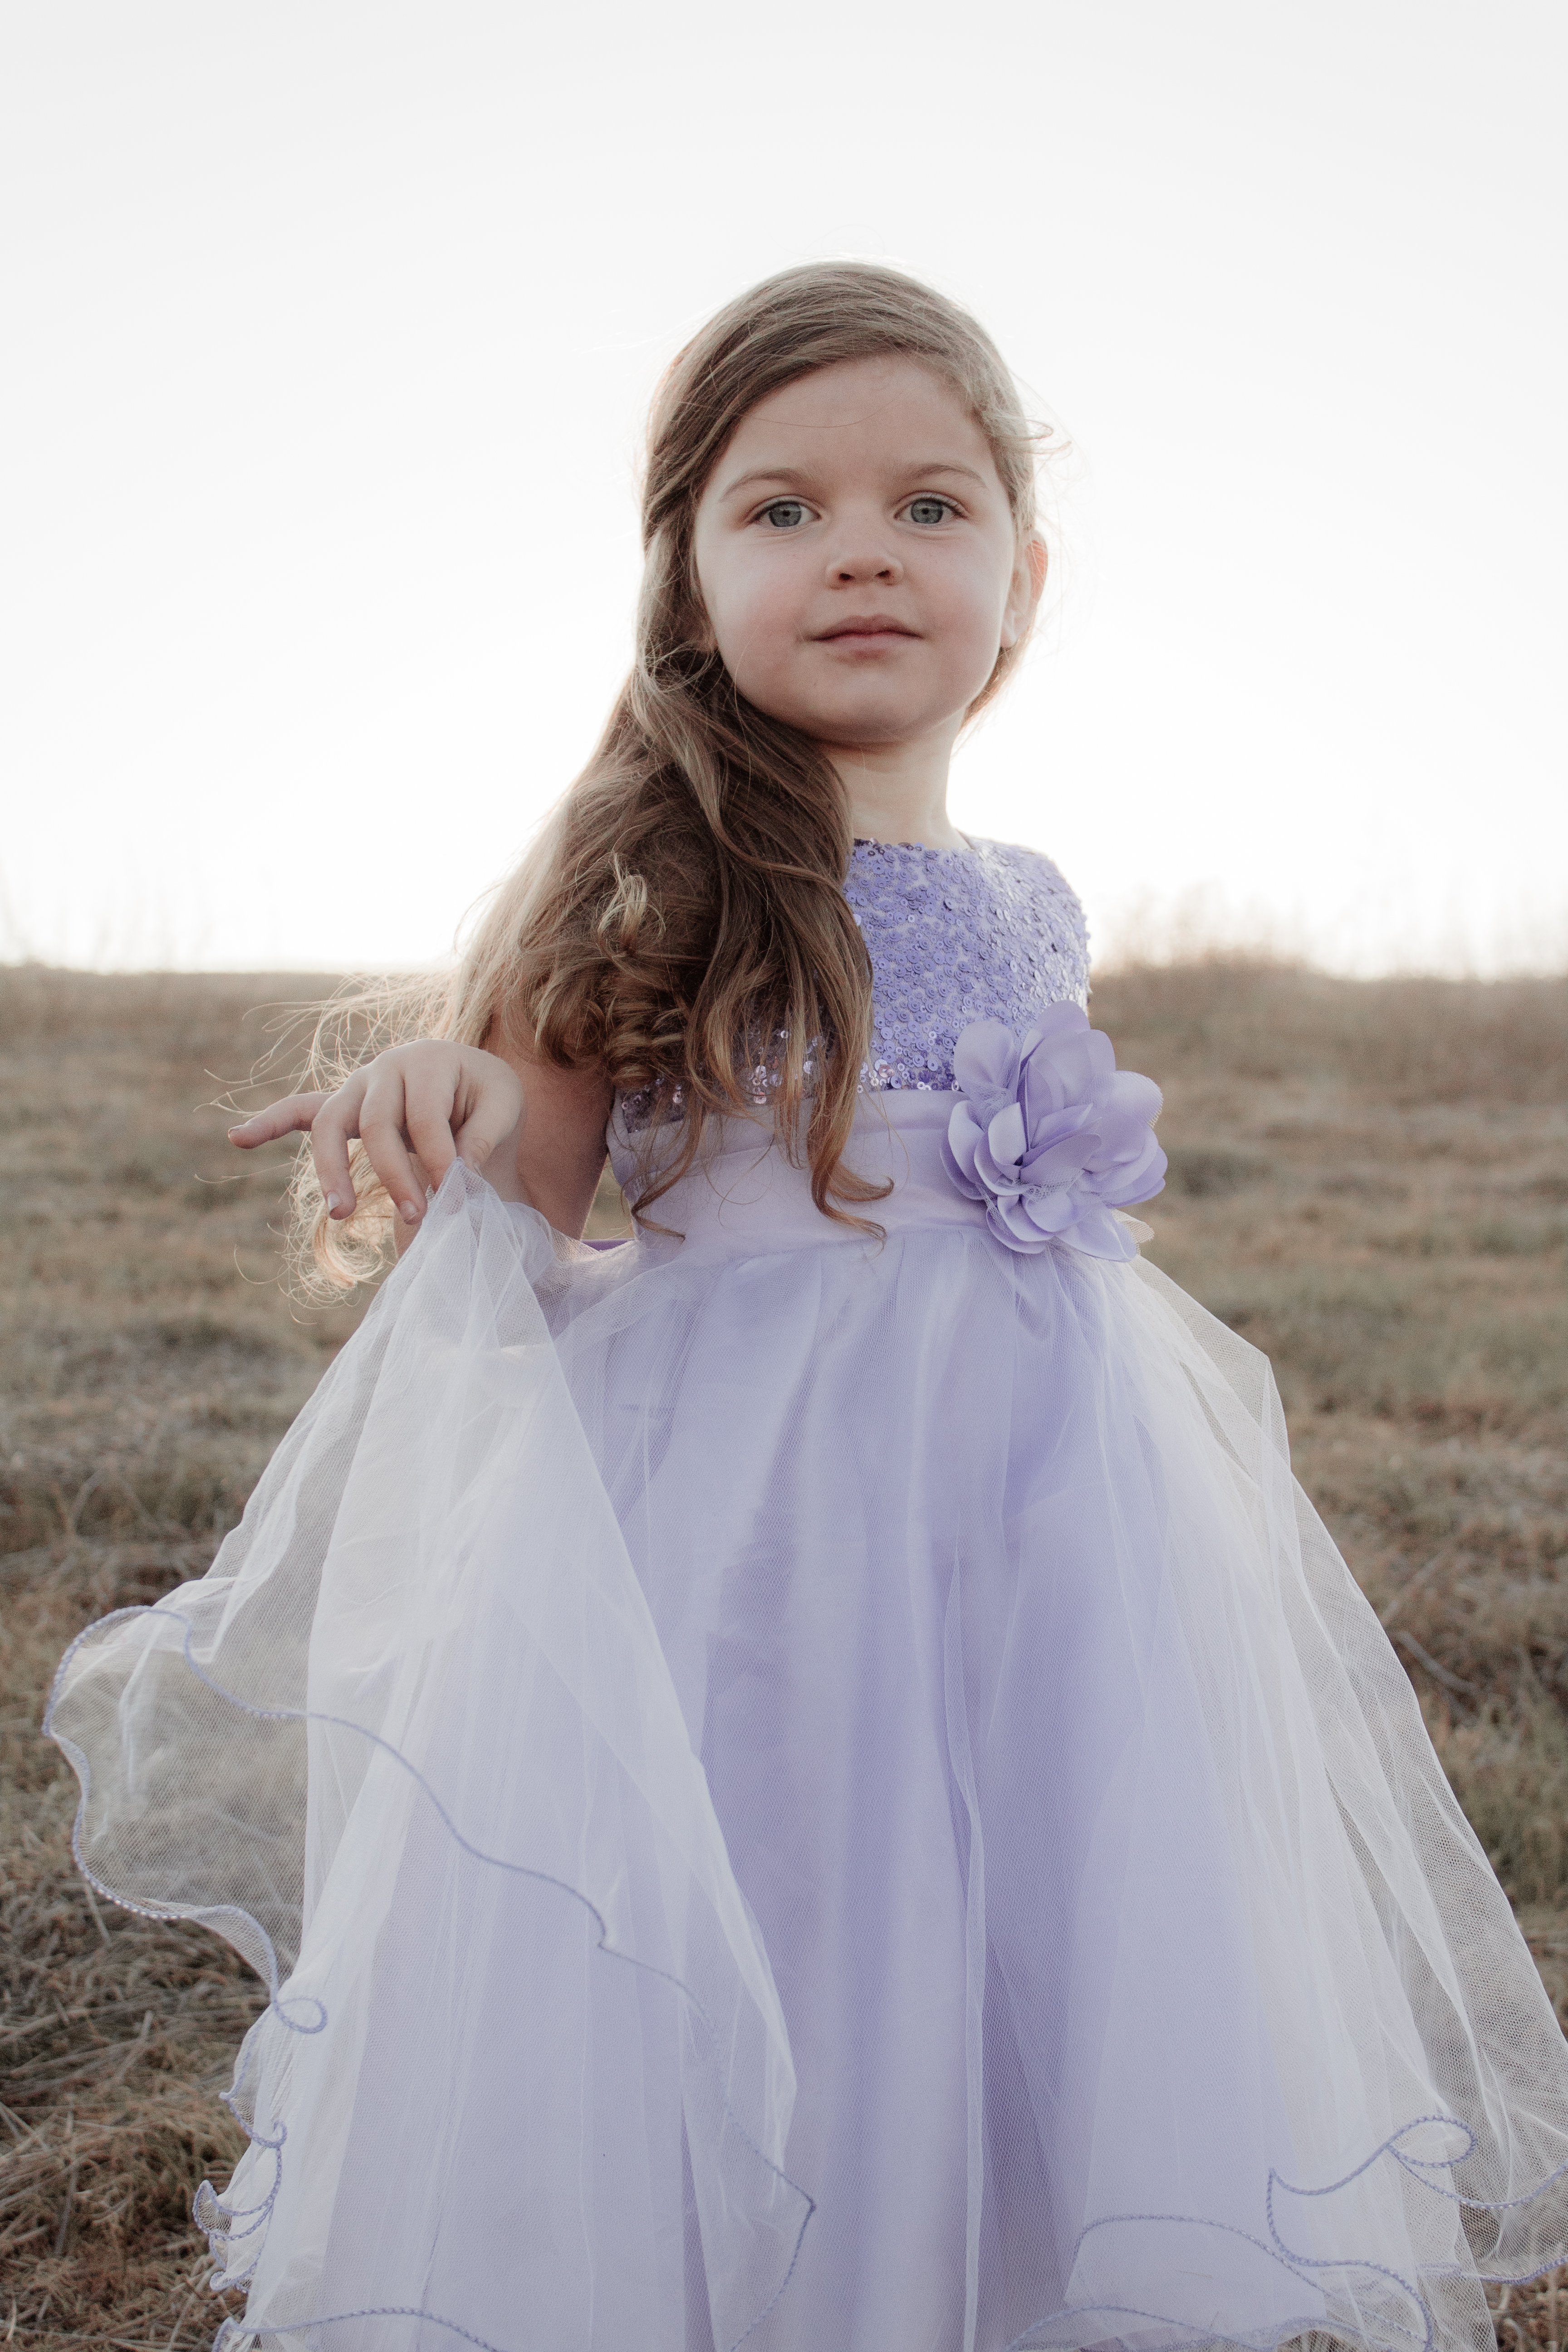 A photo of a little girl in a sparkly purple dress in a meadow.